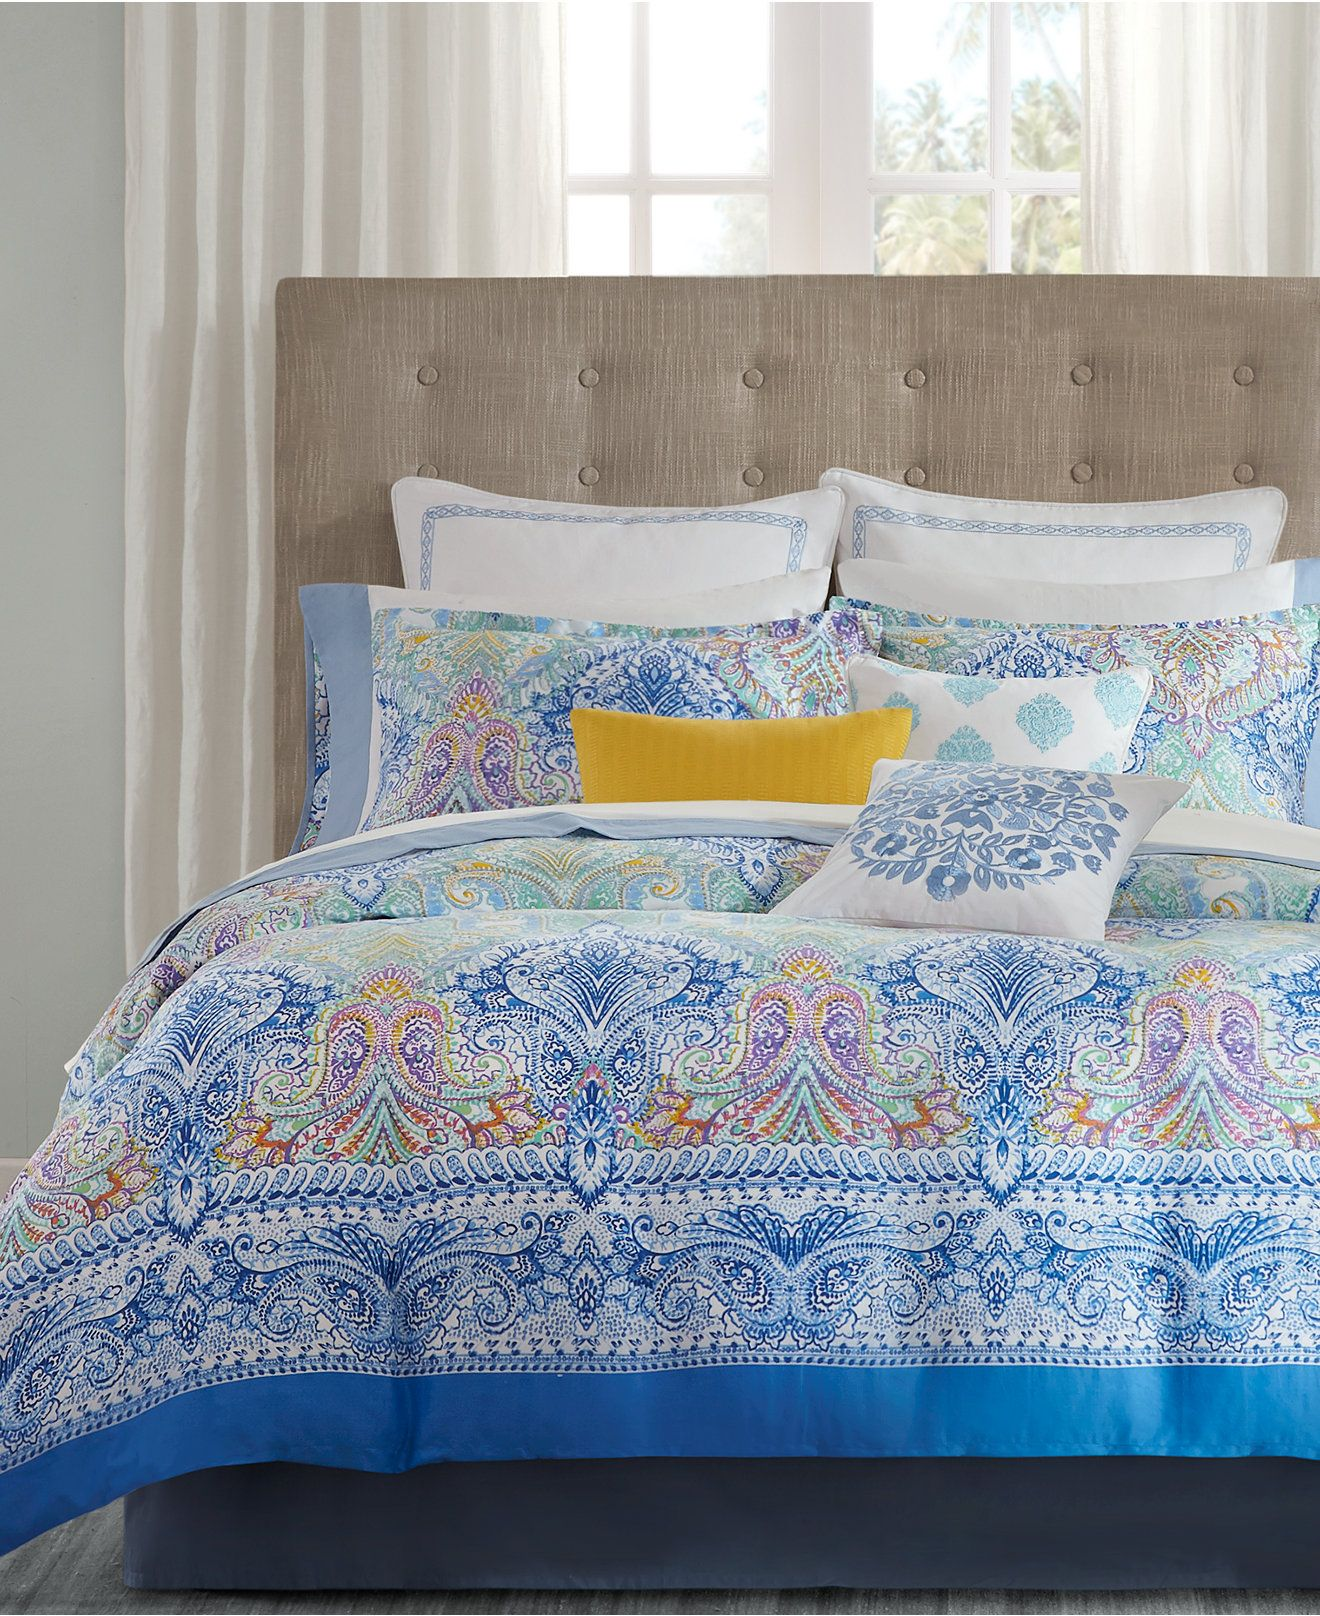 Echo Painted Paisley forter and Duvet Sets Bedding Collections